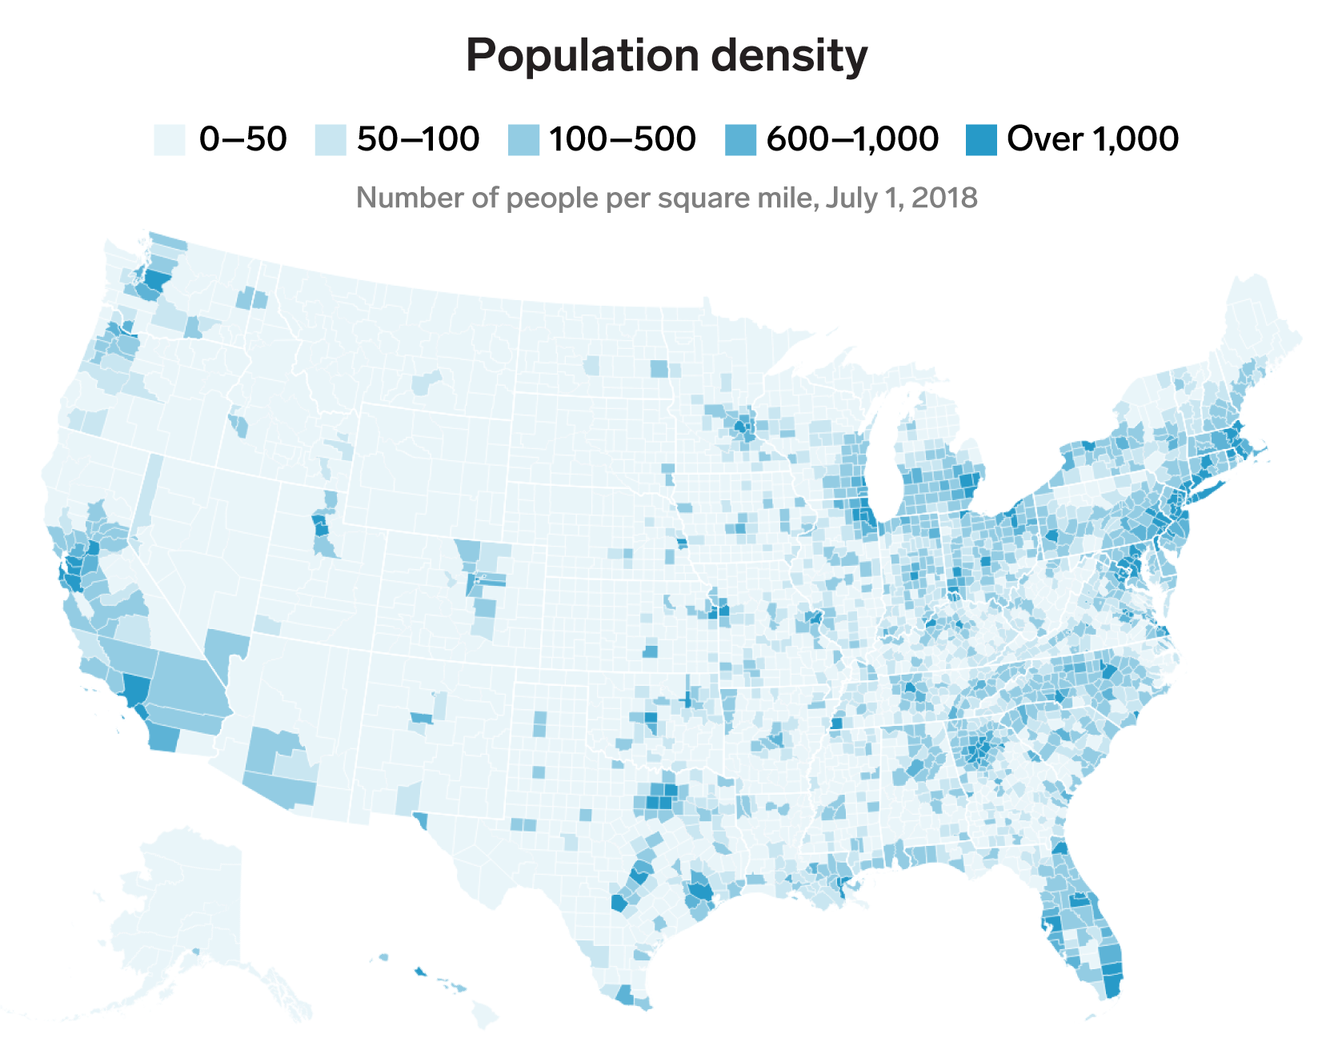 Us Population Density Map 2019 On Independence Day, 8 maps highlight splendid diversity in USA